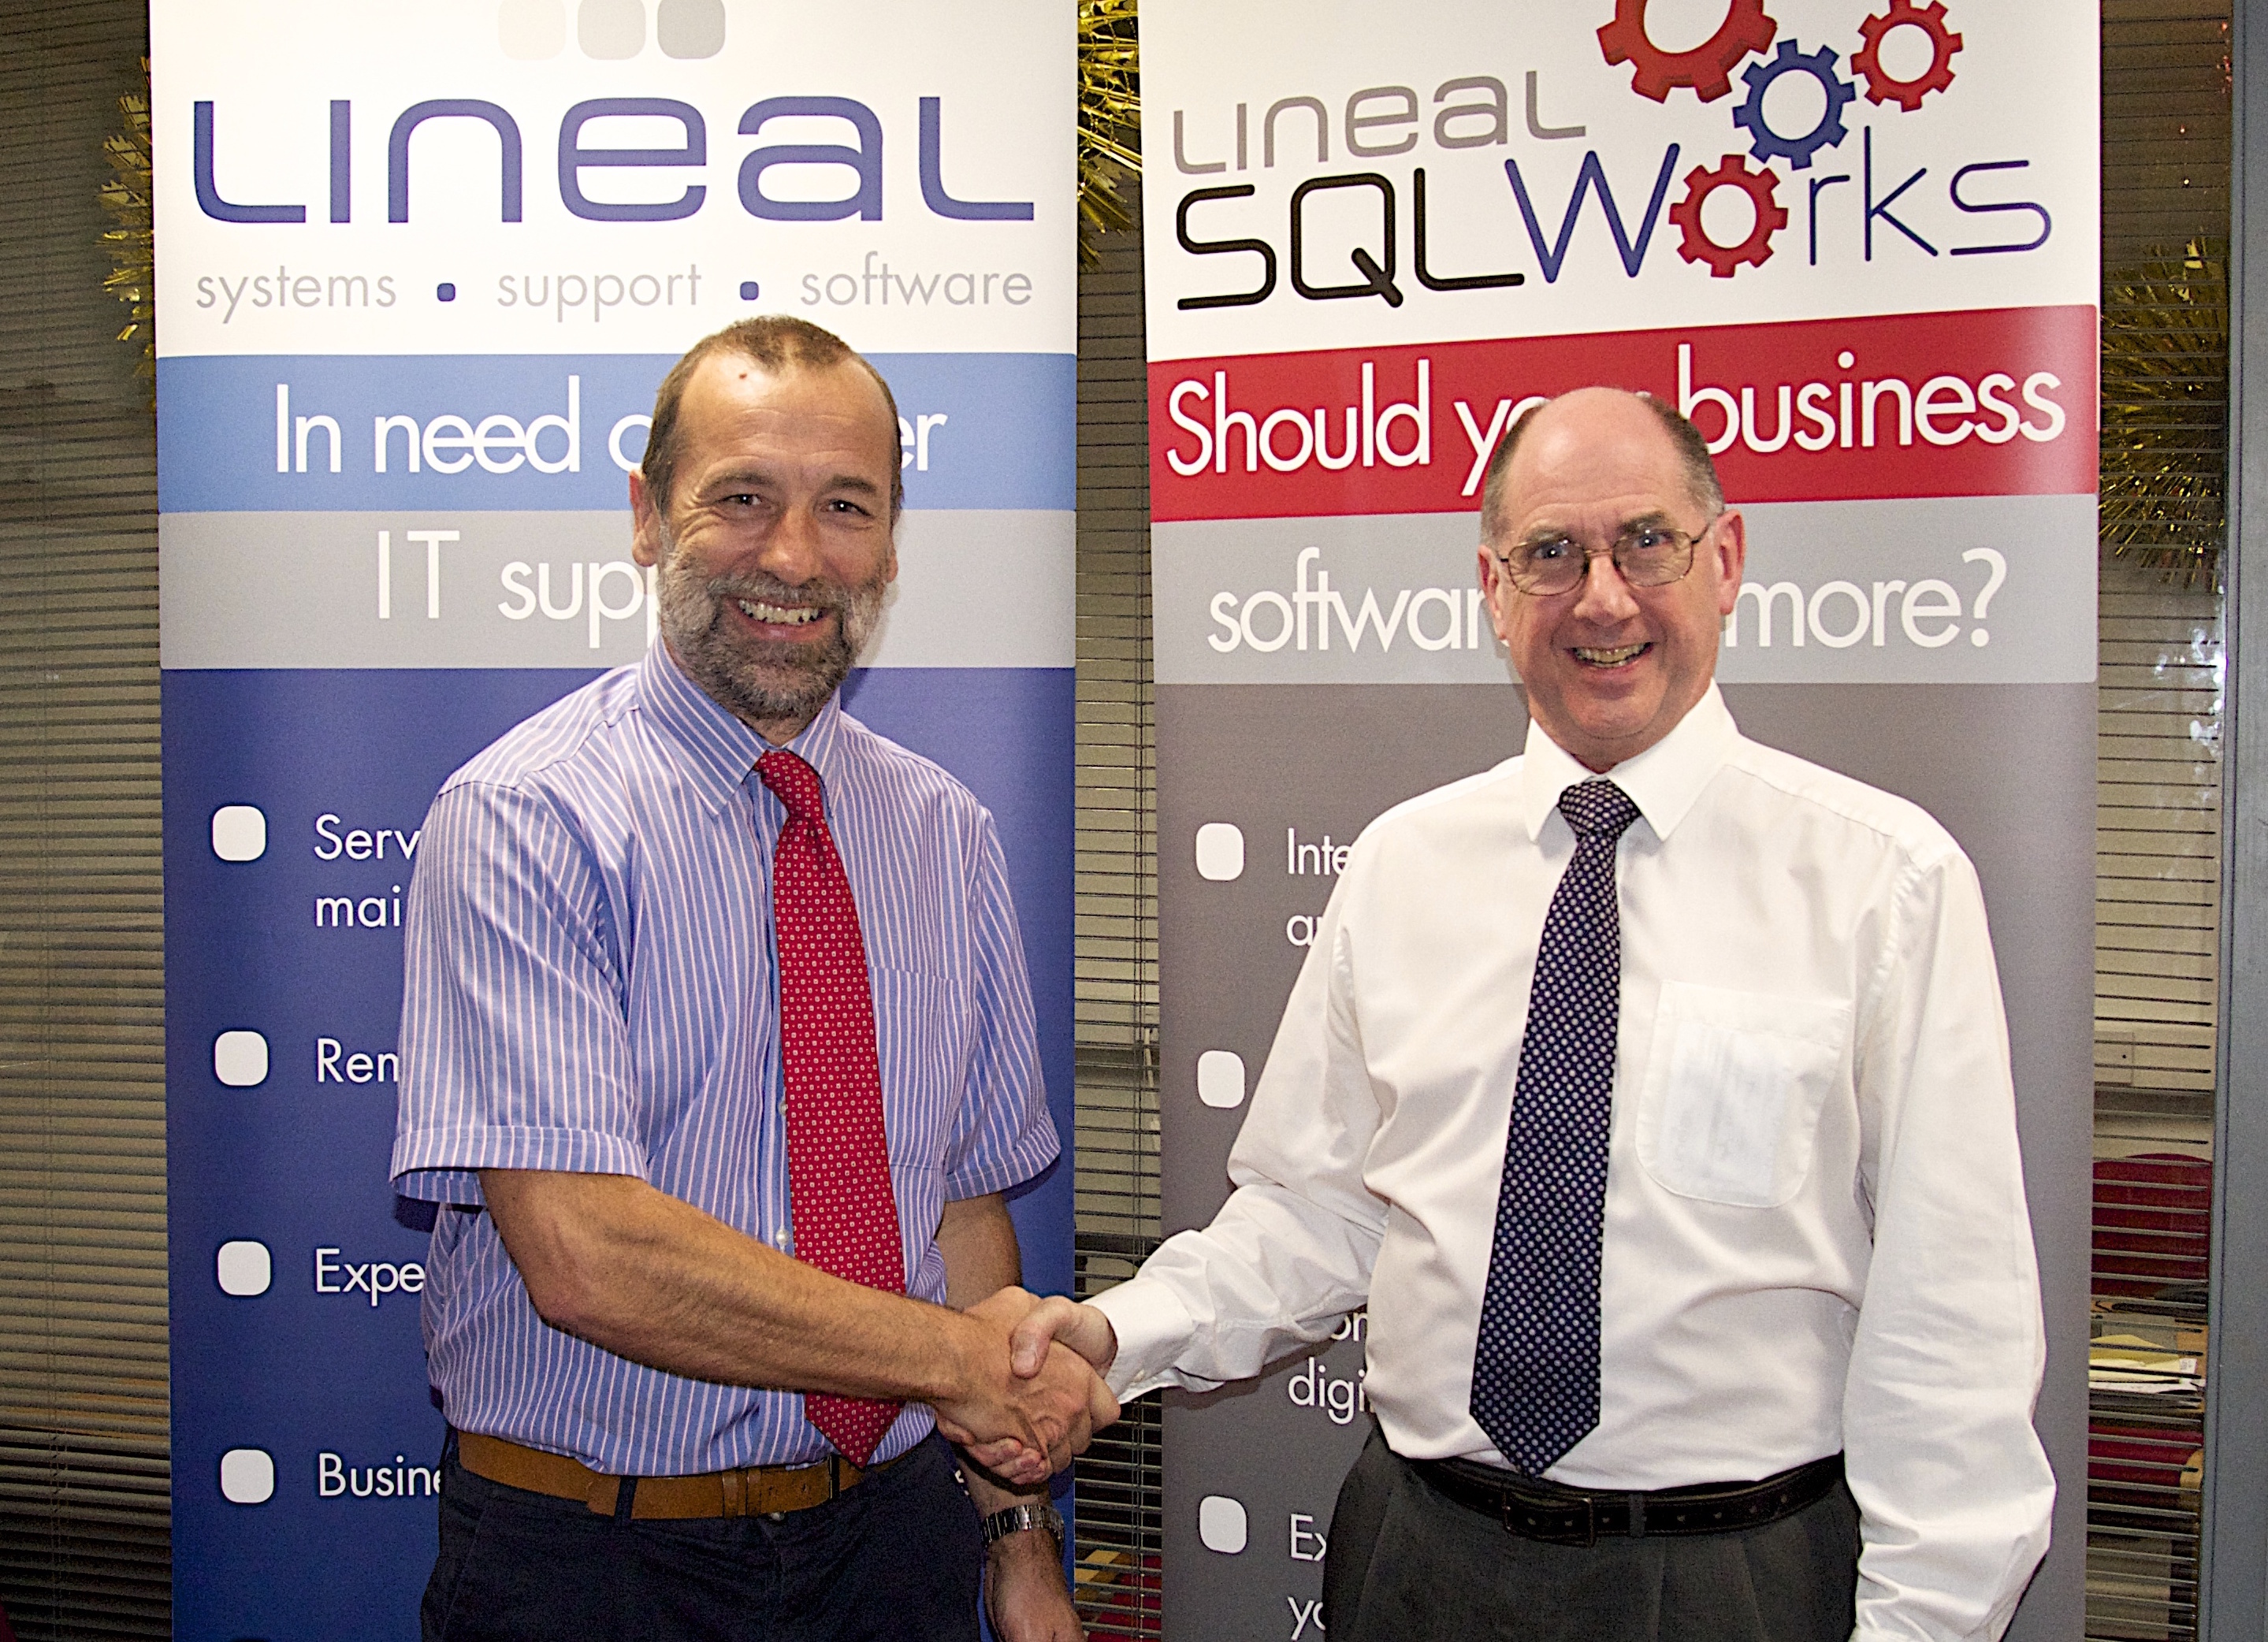 lineal active merger